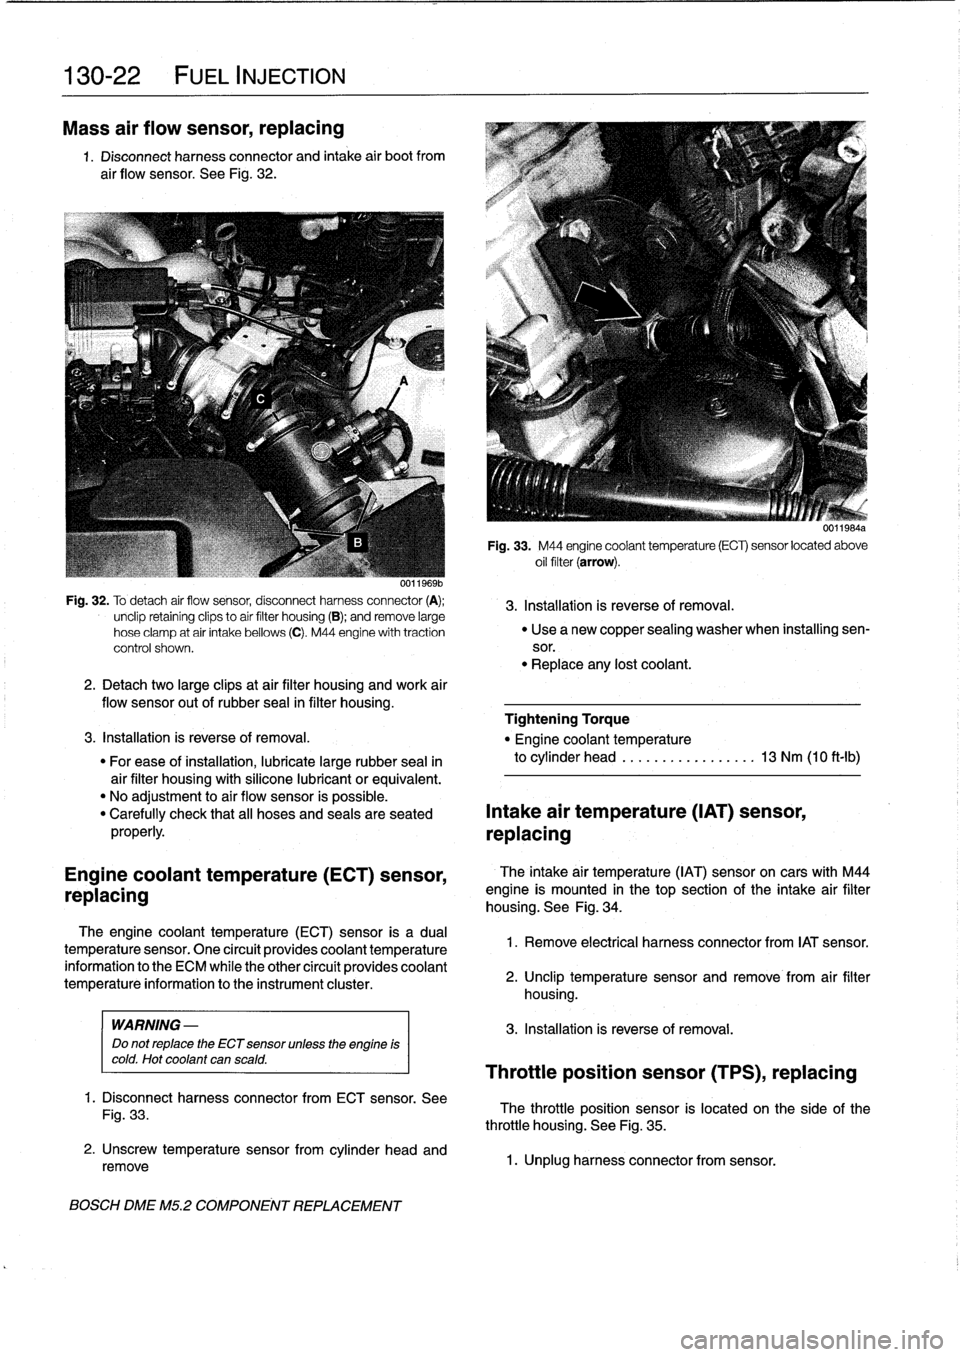 Traction Control Bmw 325i 1994 E36 Workshop Manual 94 Engine Wiring Harness Page 168